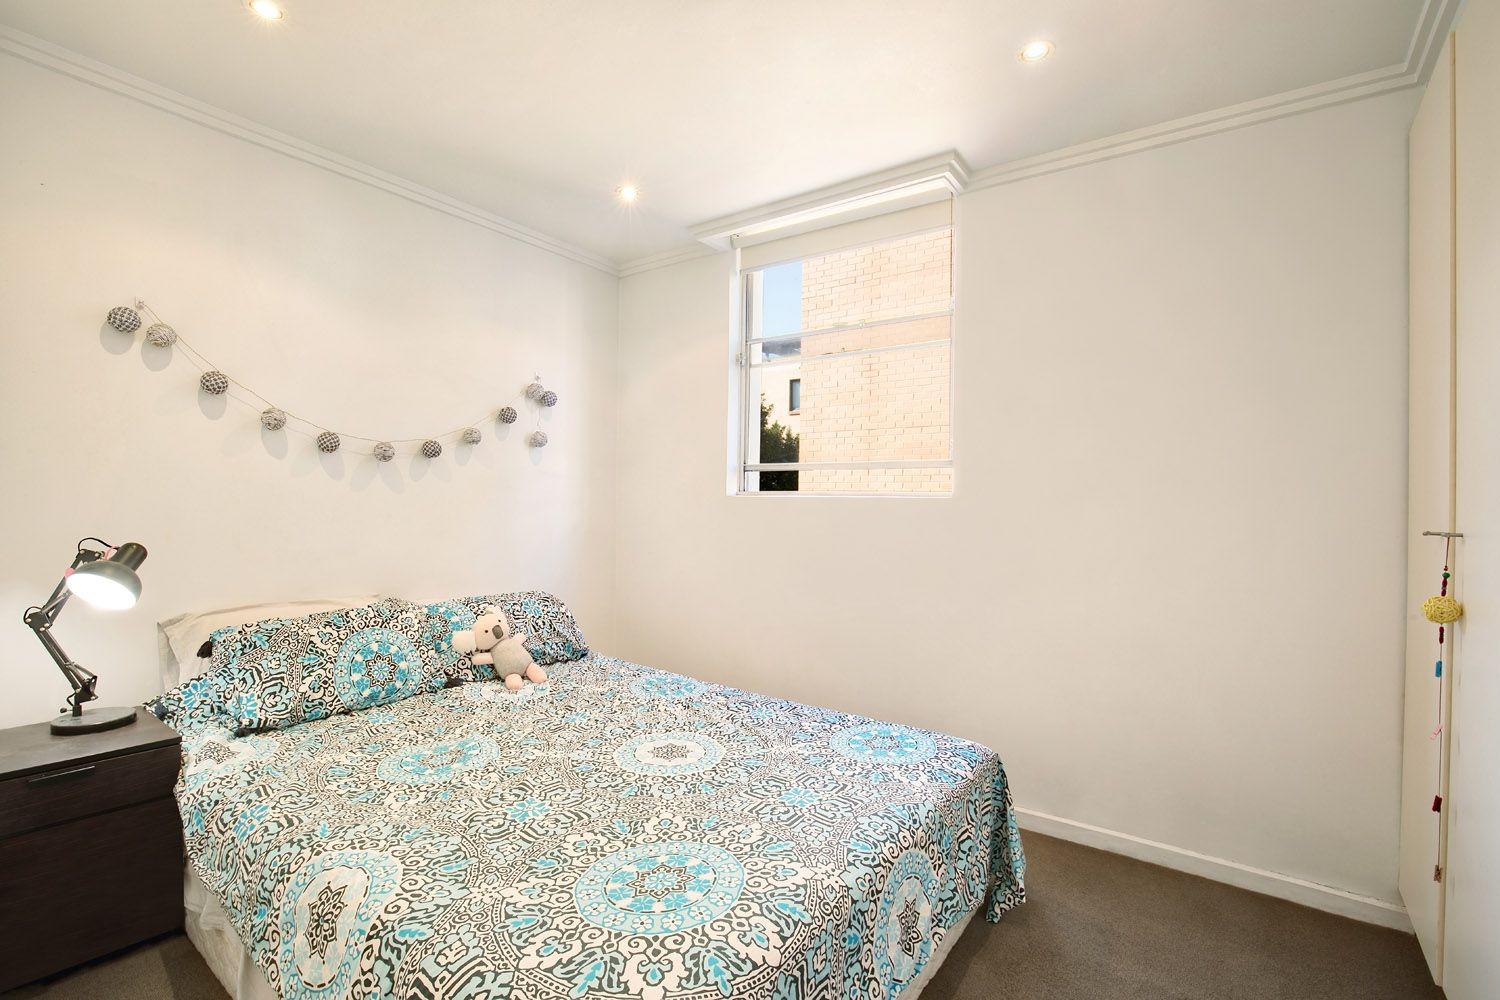 106/144-152 Mallett Street, Camperdown NSW 2050